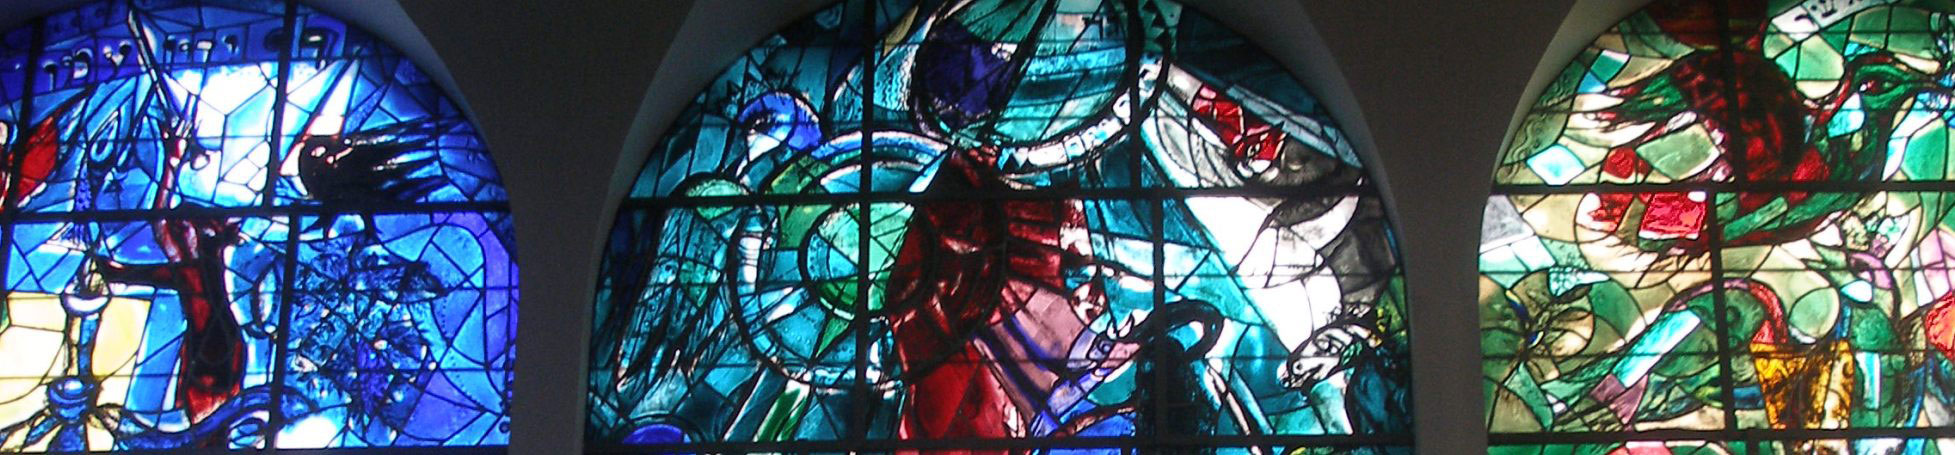 Chagall Windows (c) Photo GoIsrael